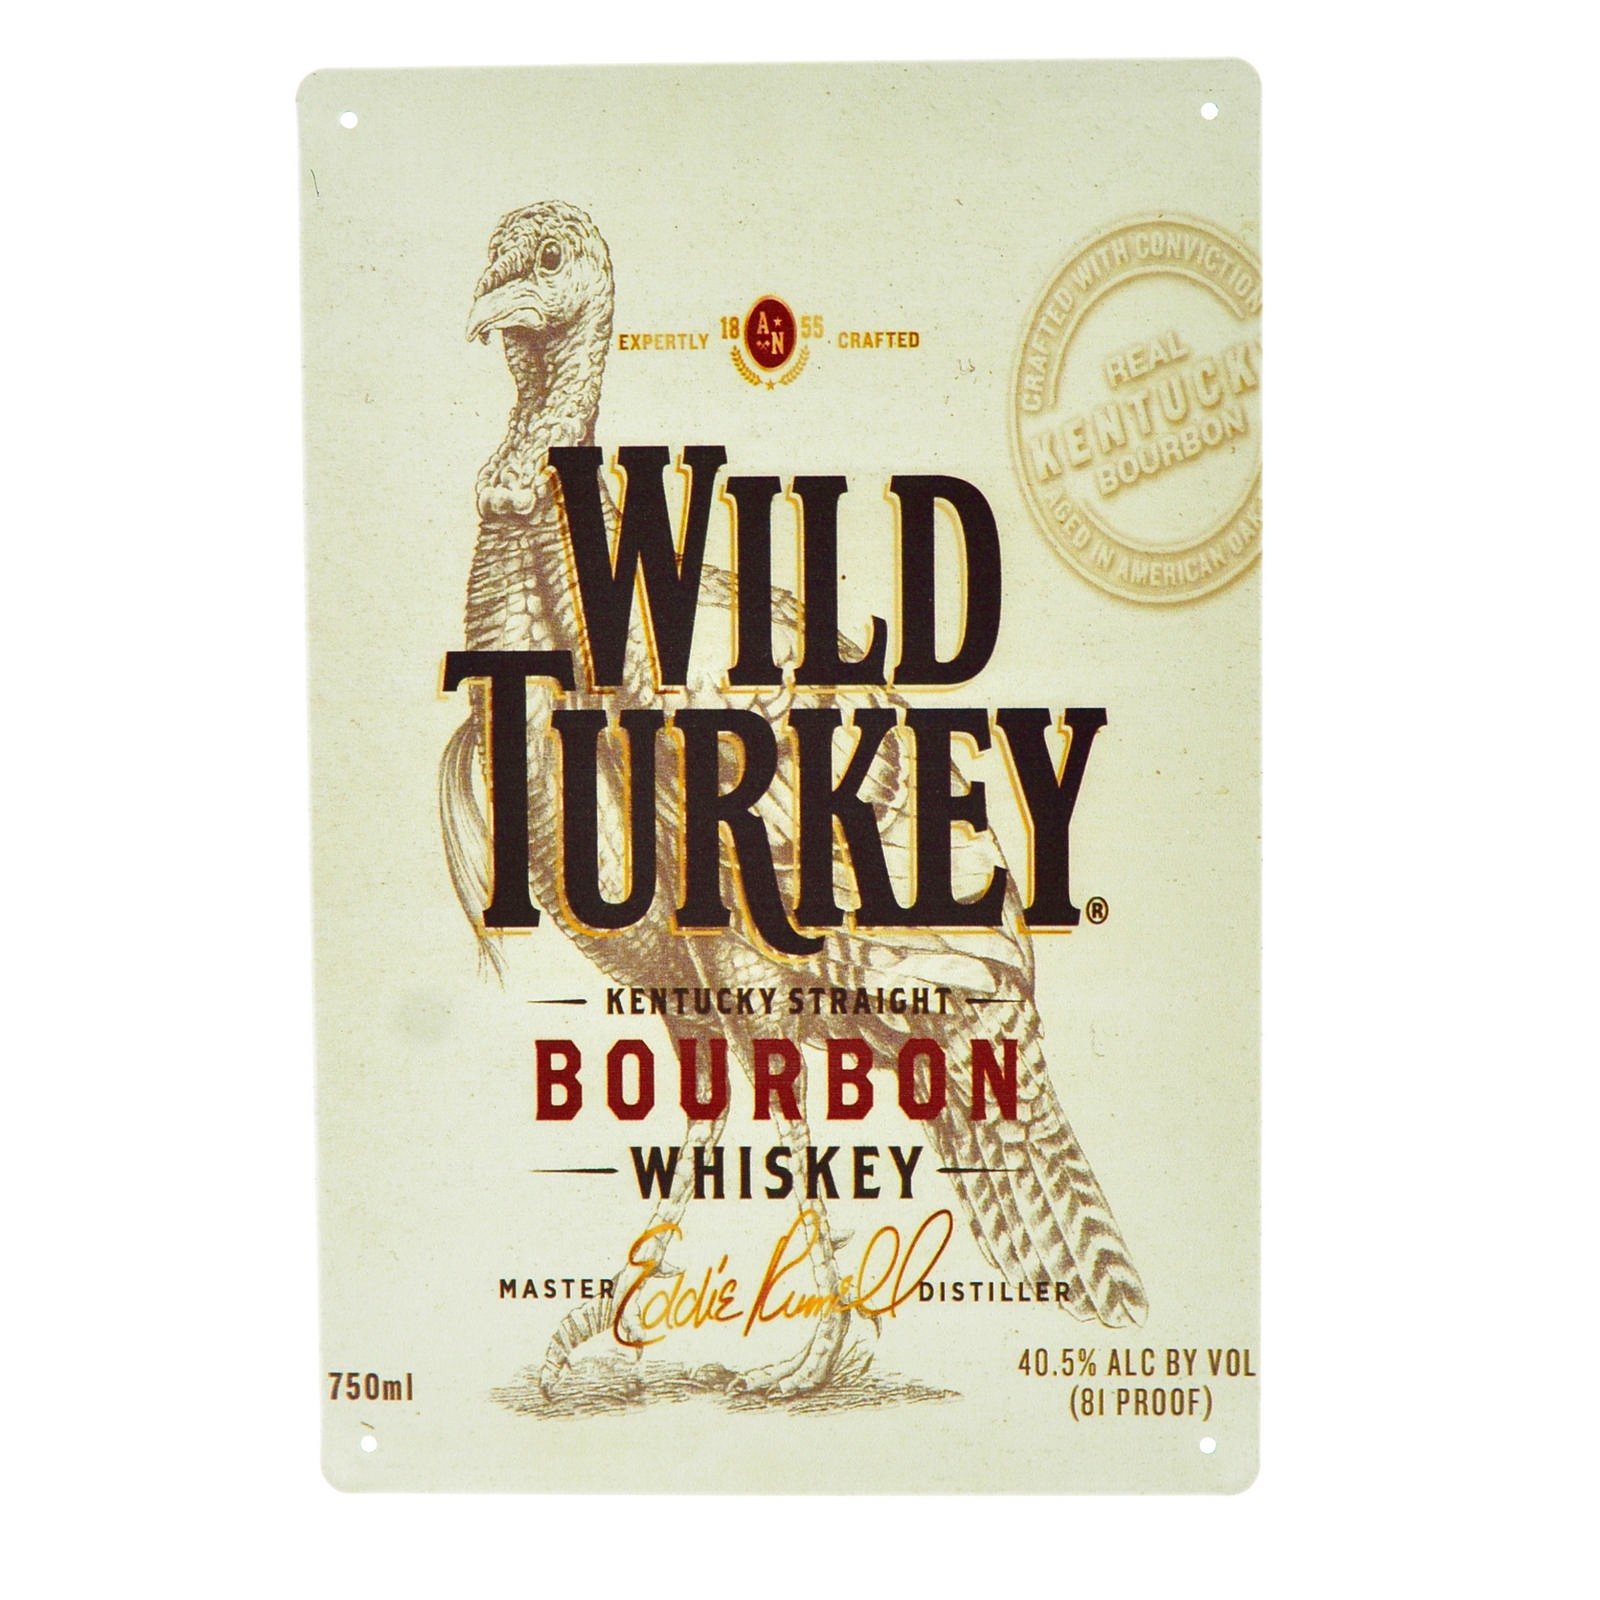 Cartel Metálico de Wild Turkey